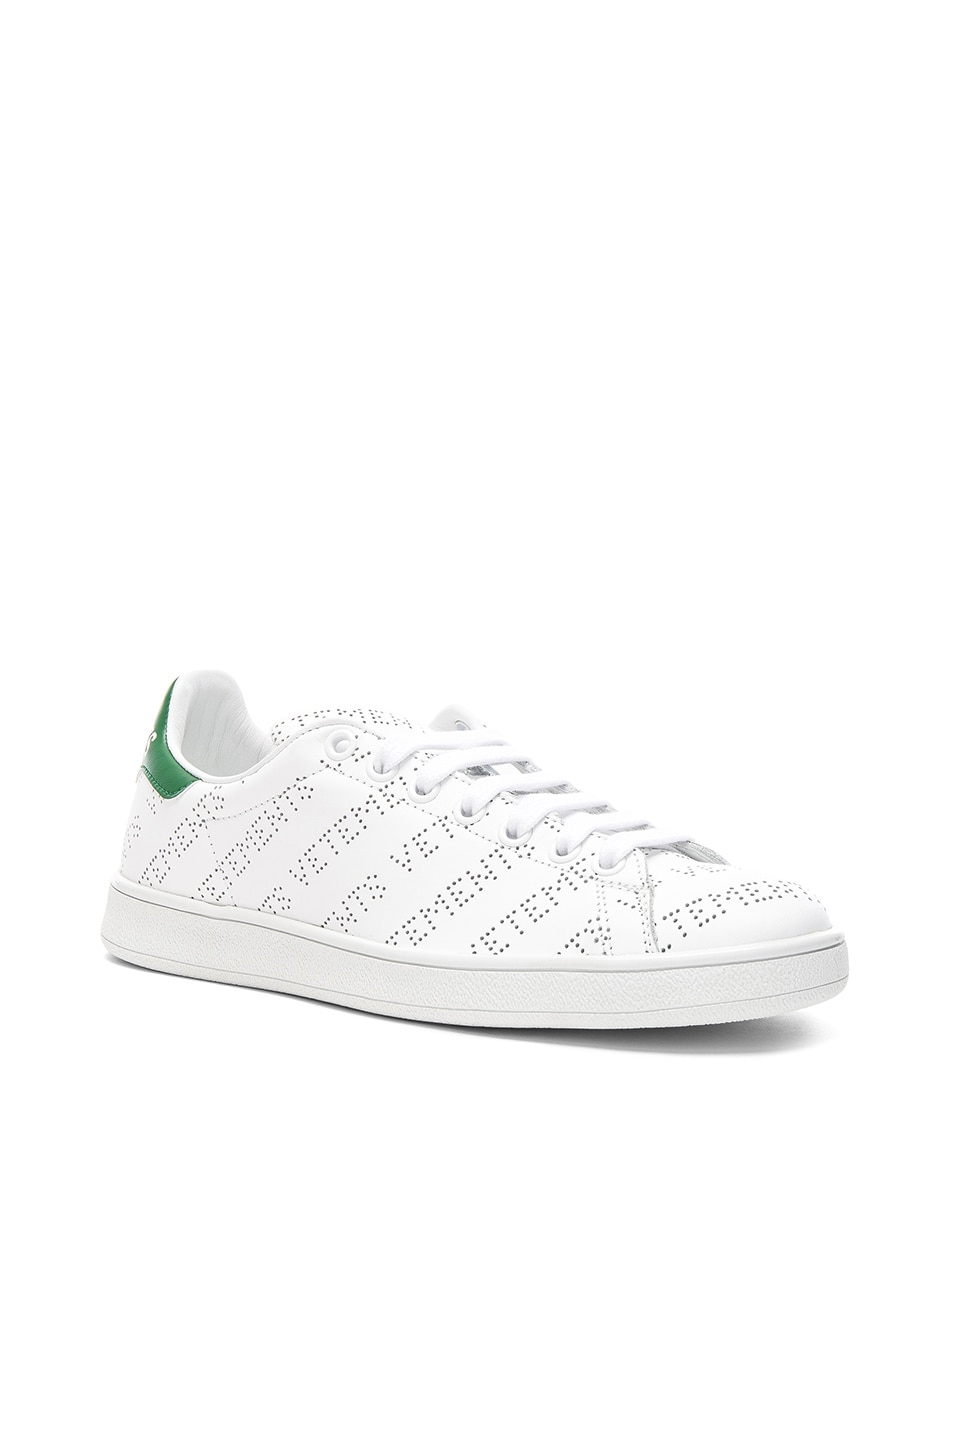 Image 2 of VETEMENTS Perforated Sneakers in White & Green